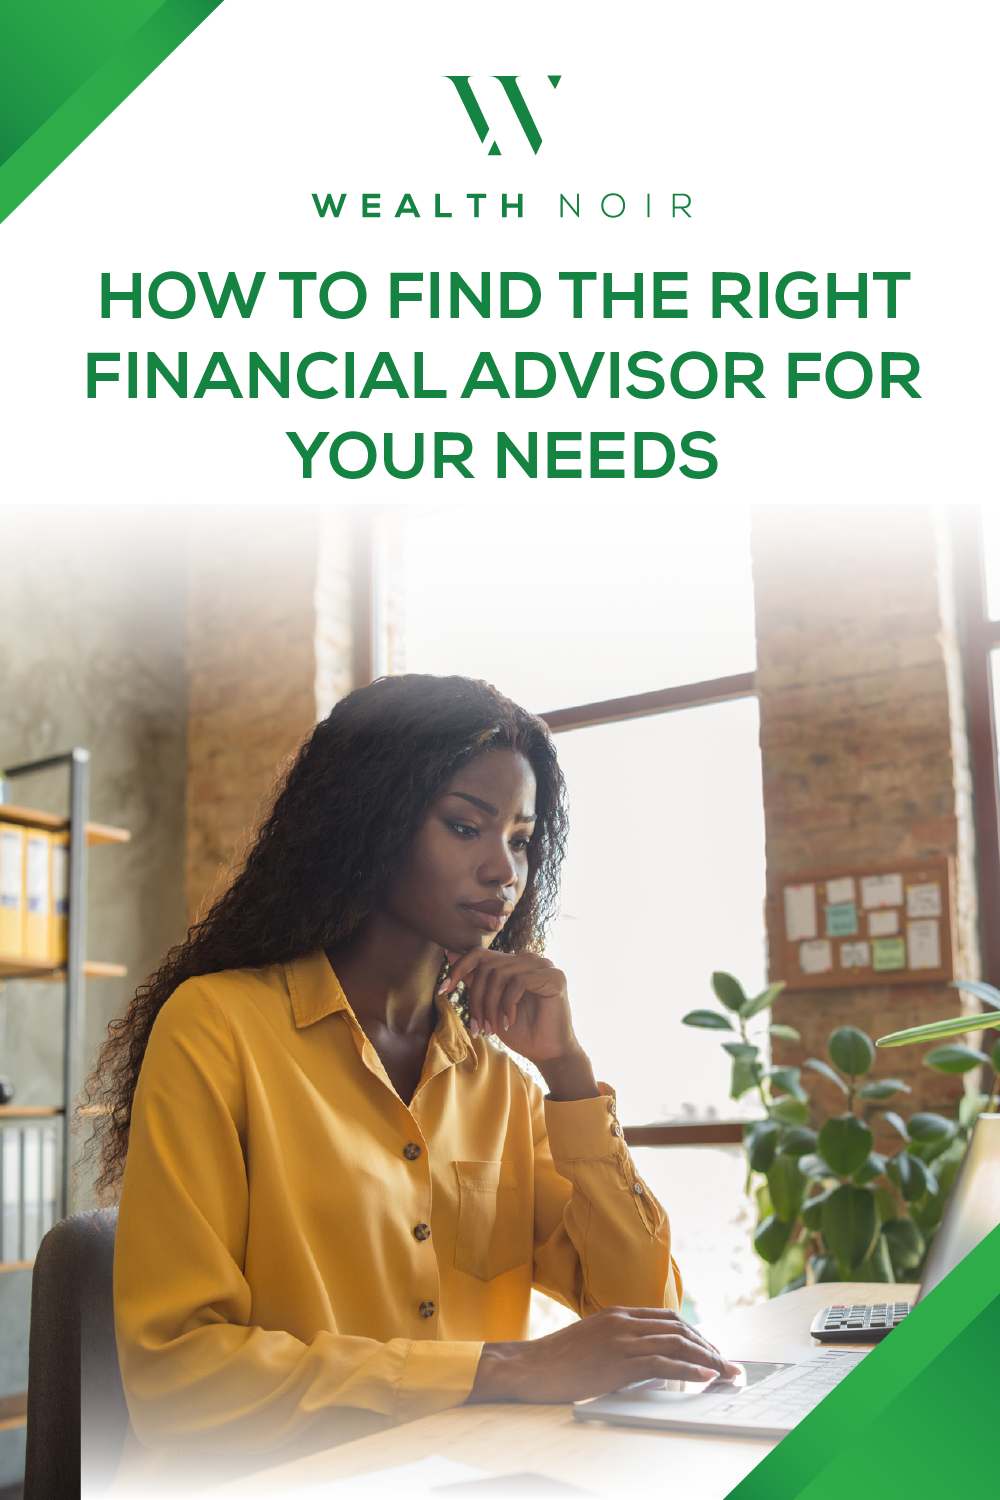 How to Find the Right Financial Advisors for Your Needs